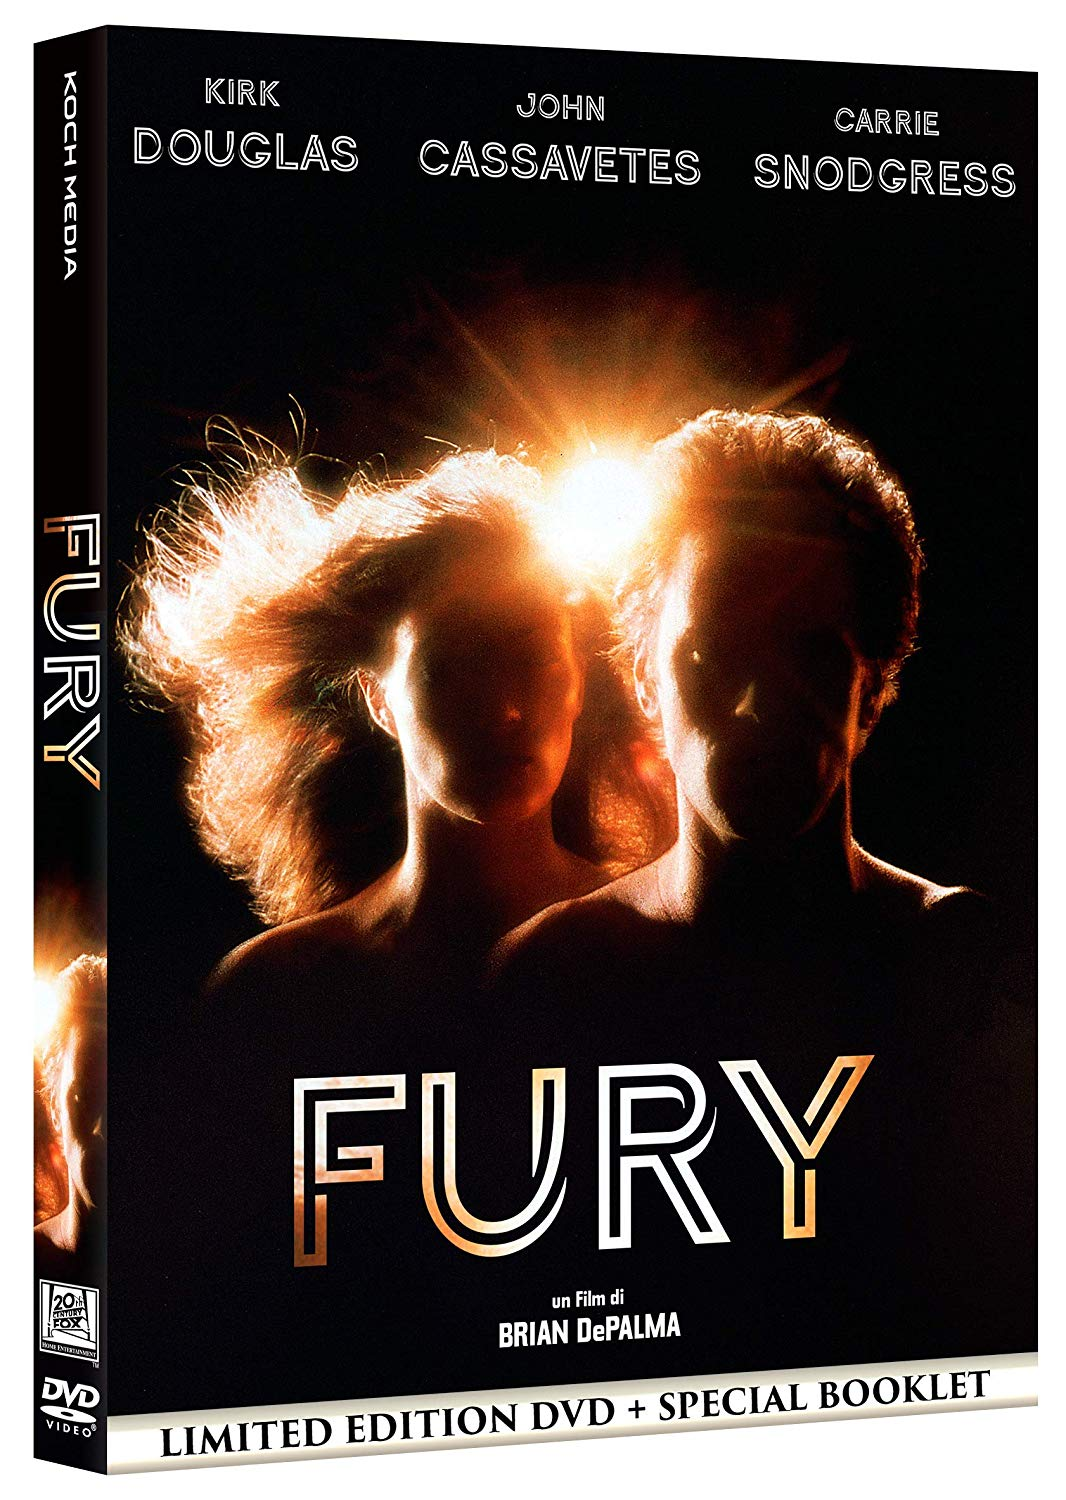 FURY (DVD + BOOKLET) (LIMITED EDITION) (DVD)